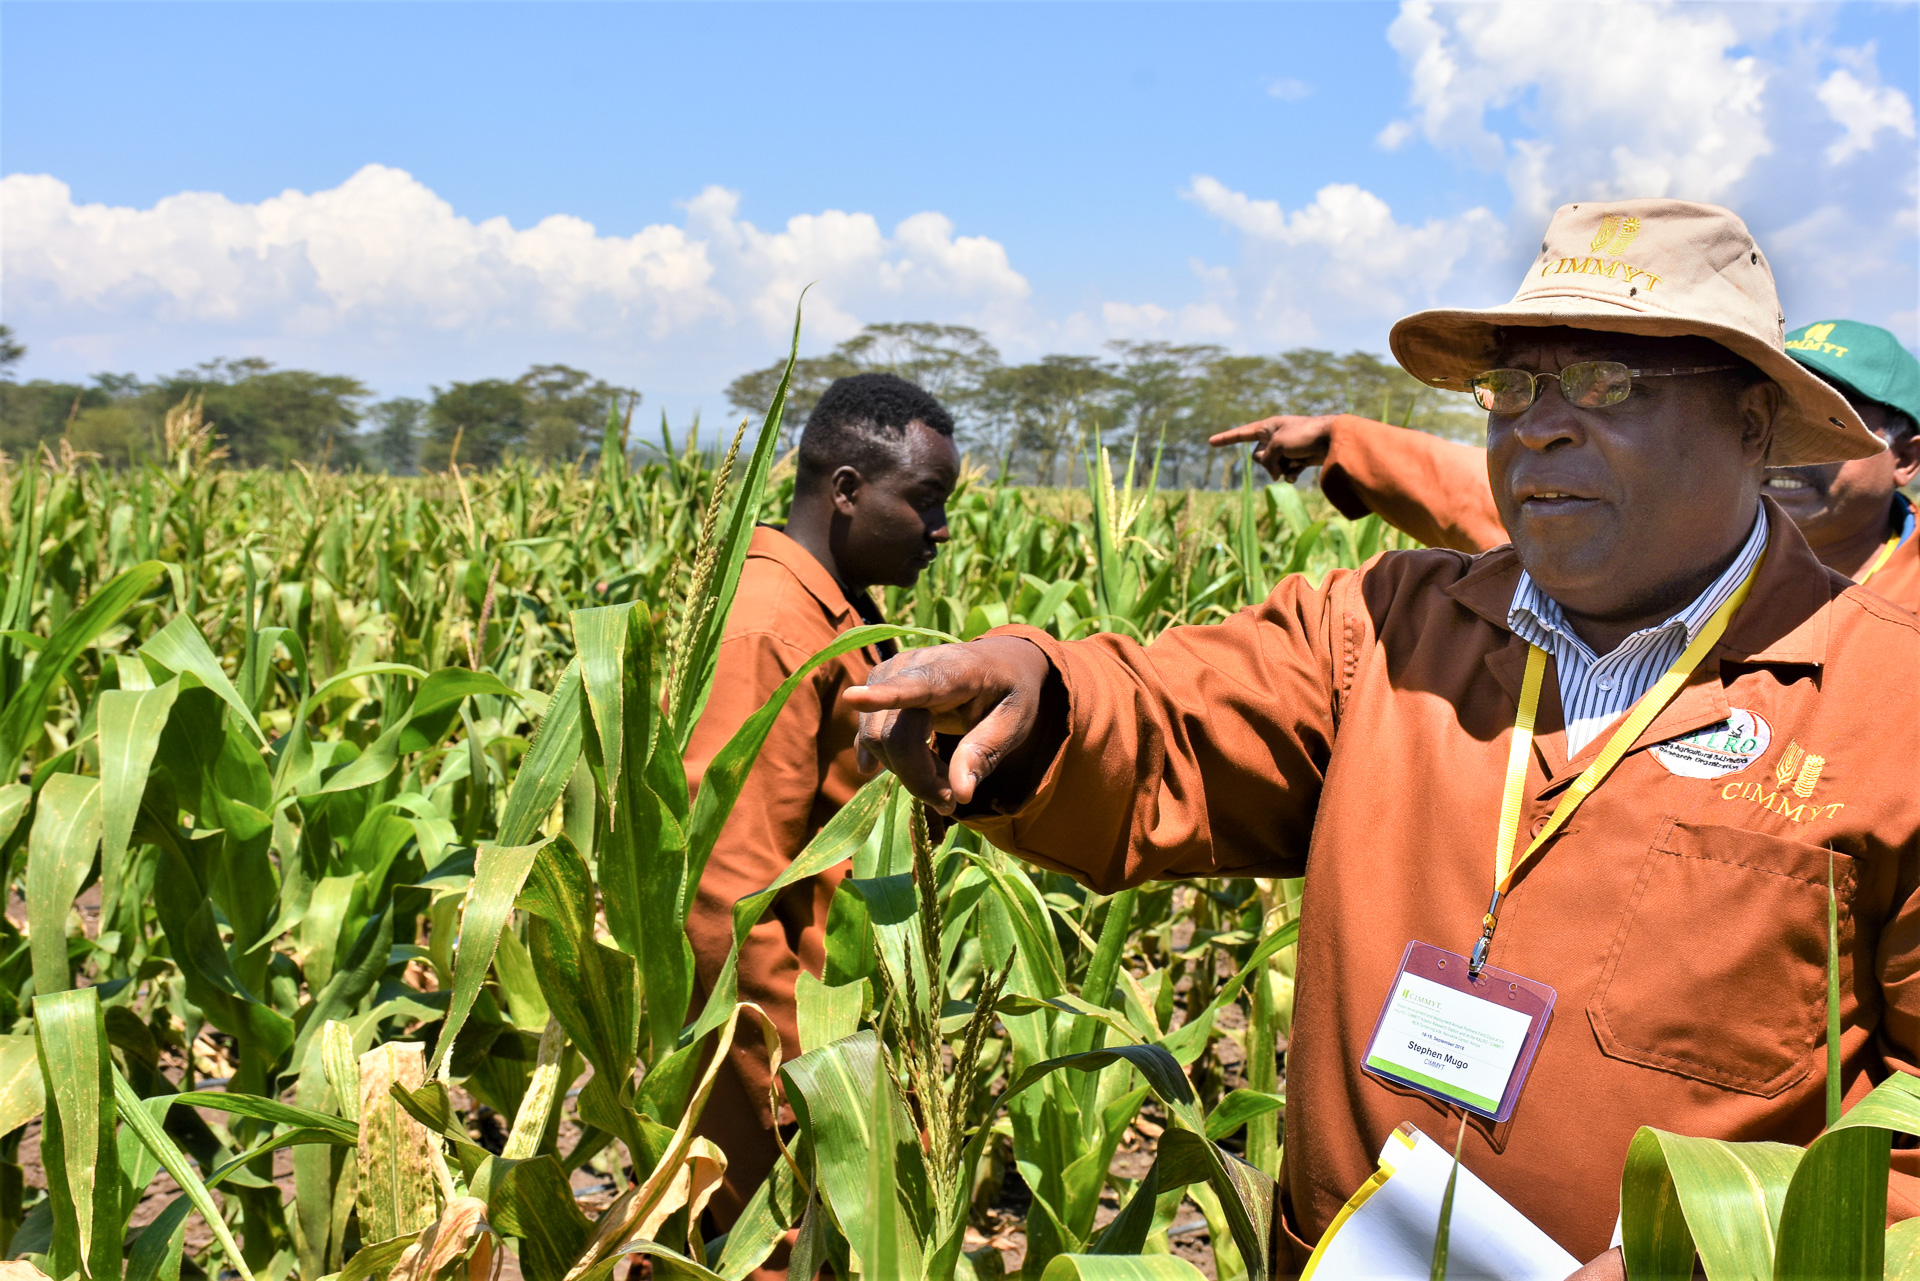 Stephen Mugo (right) at the MLN research station in Naivasha, Kenya, in September 2018. (Photo: Joshua Masinde/CIMMYT)